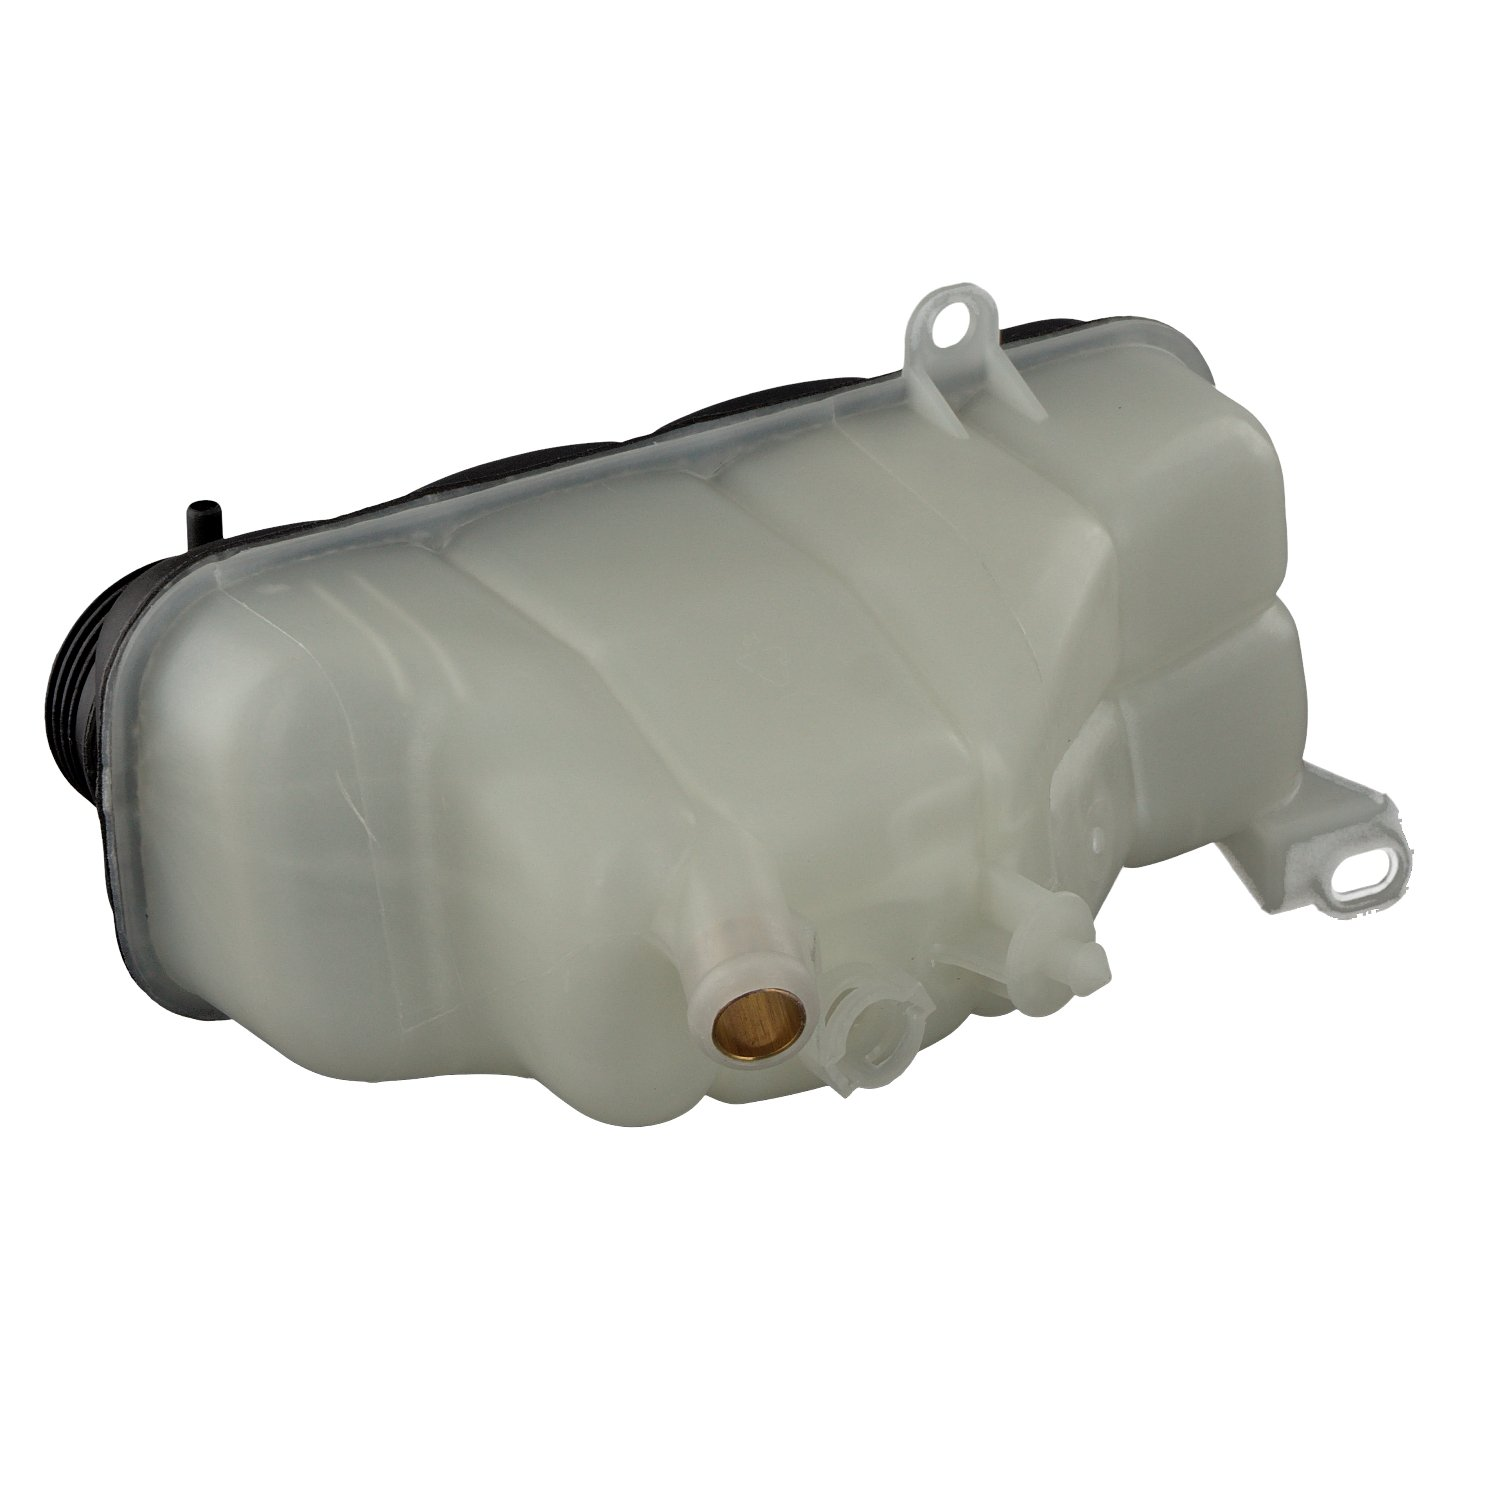 febi bilstein 38806 coolant expansion tank Pack of 1